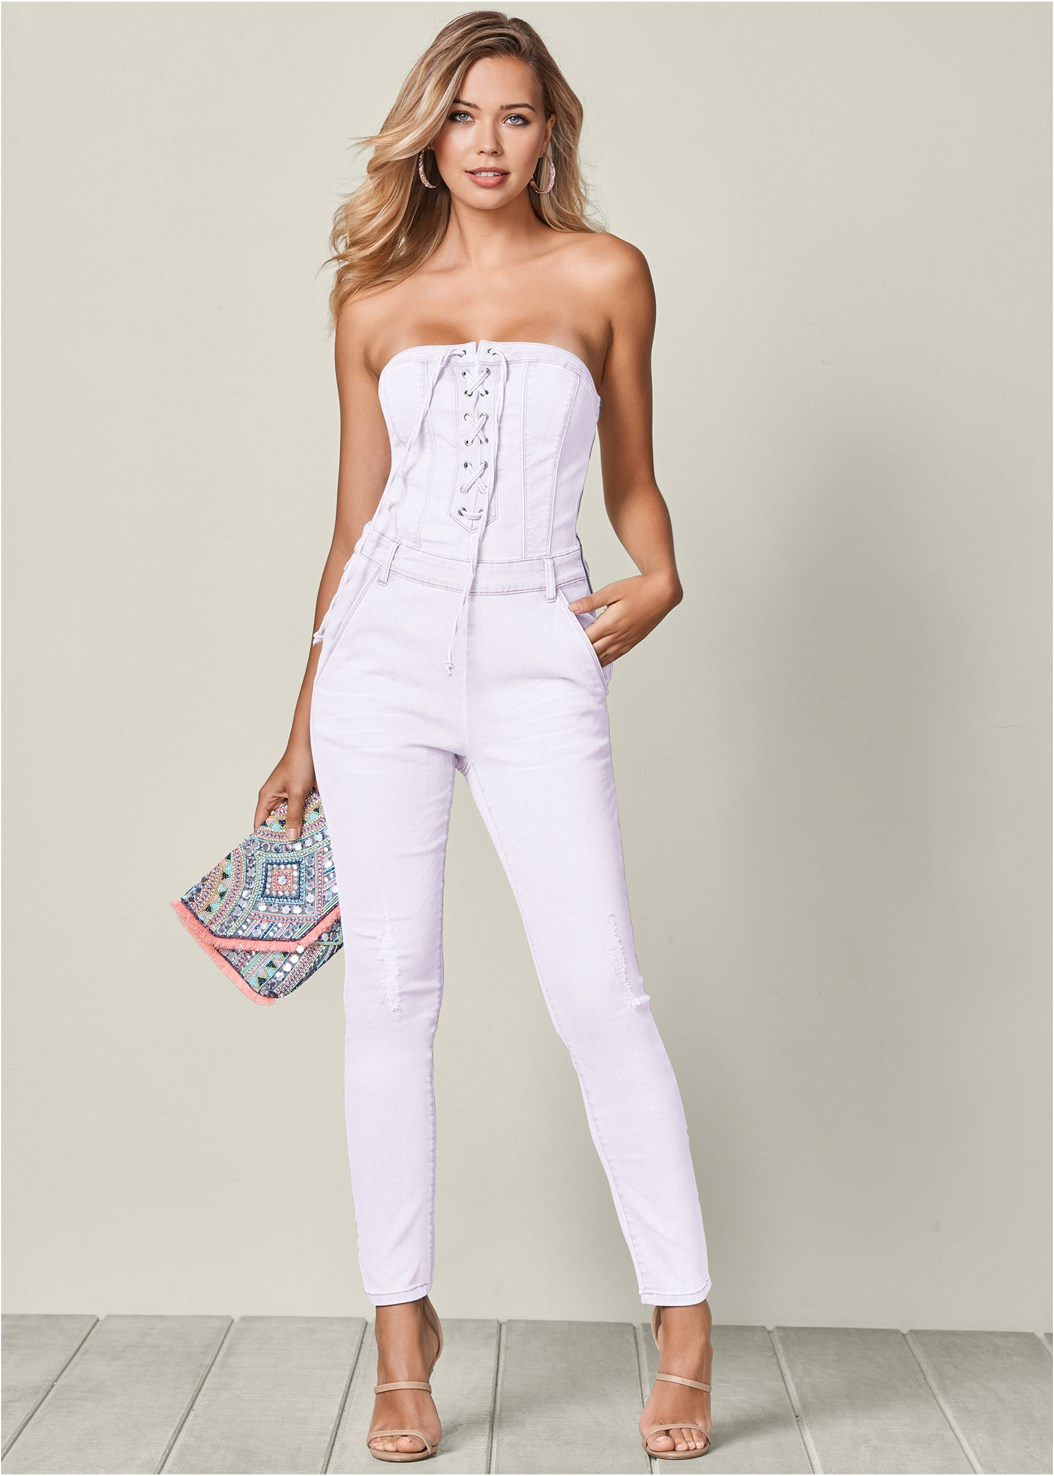 Lace Up Denim Jumpsuit,Studded Belt Bag